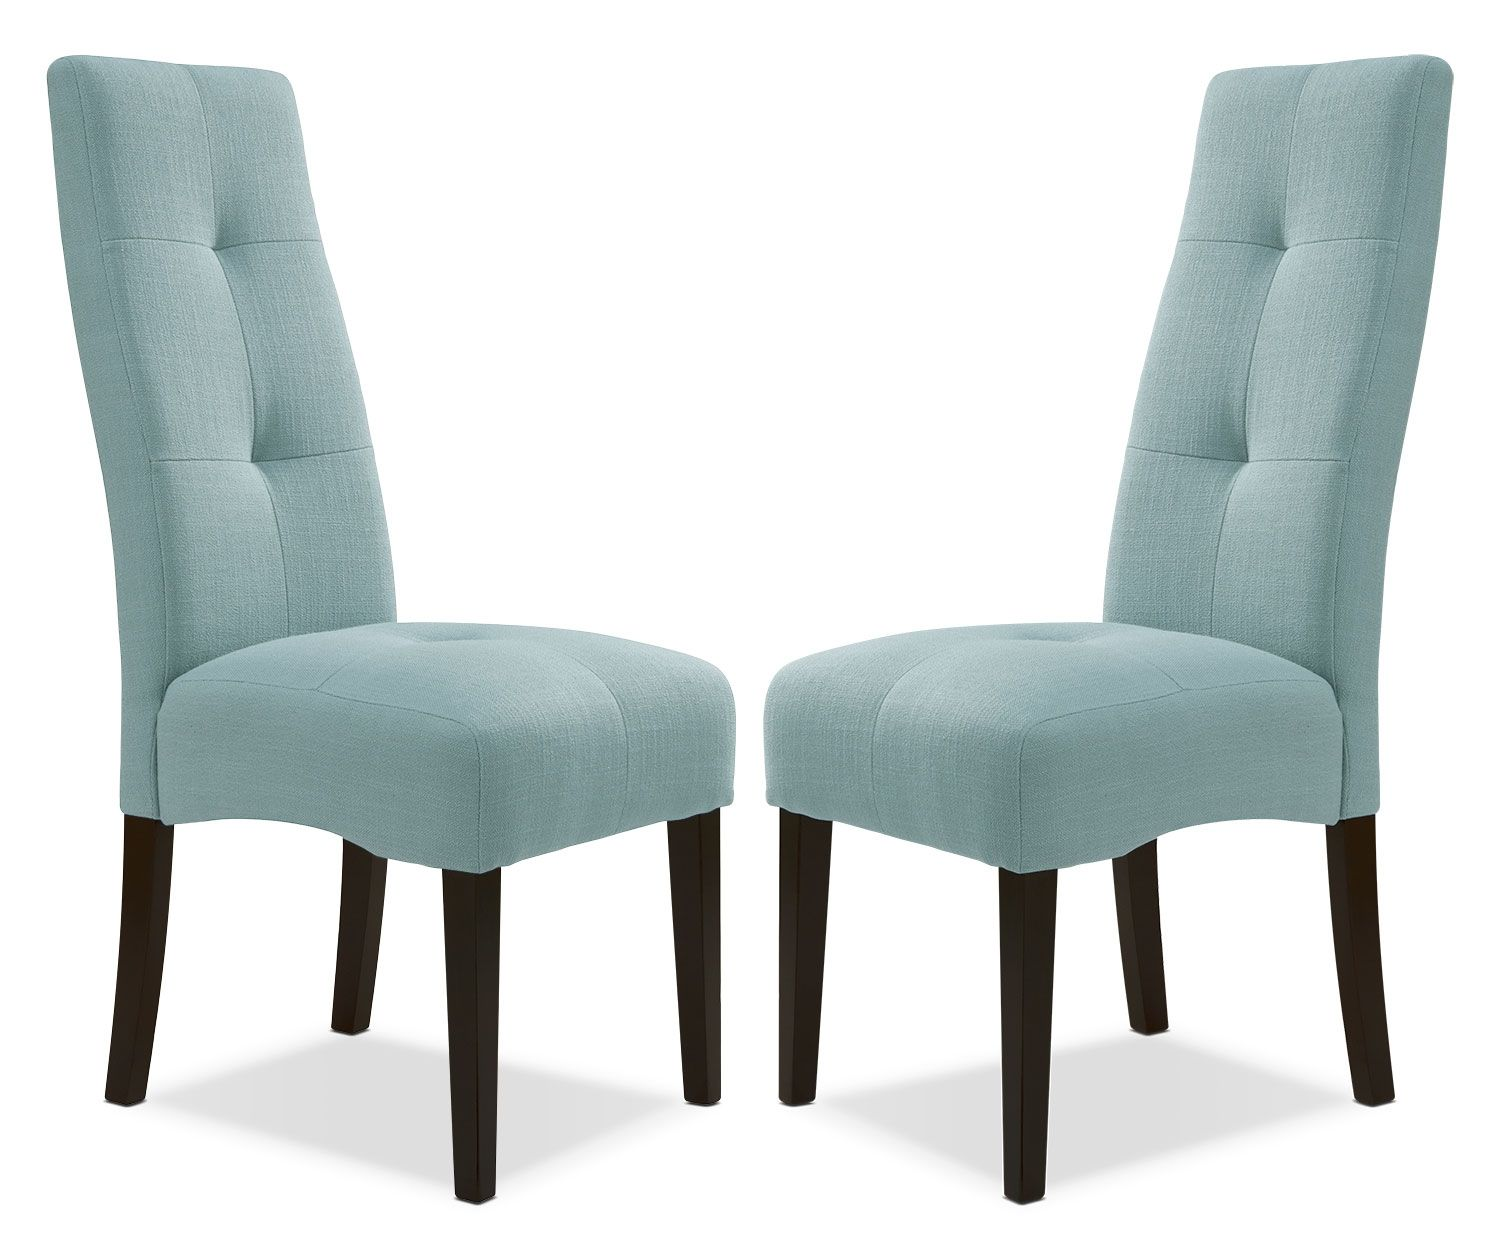 Light blue dining chairs - Sadie Light Blue Dining Chair Set Of 2 The Brick